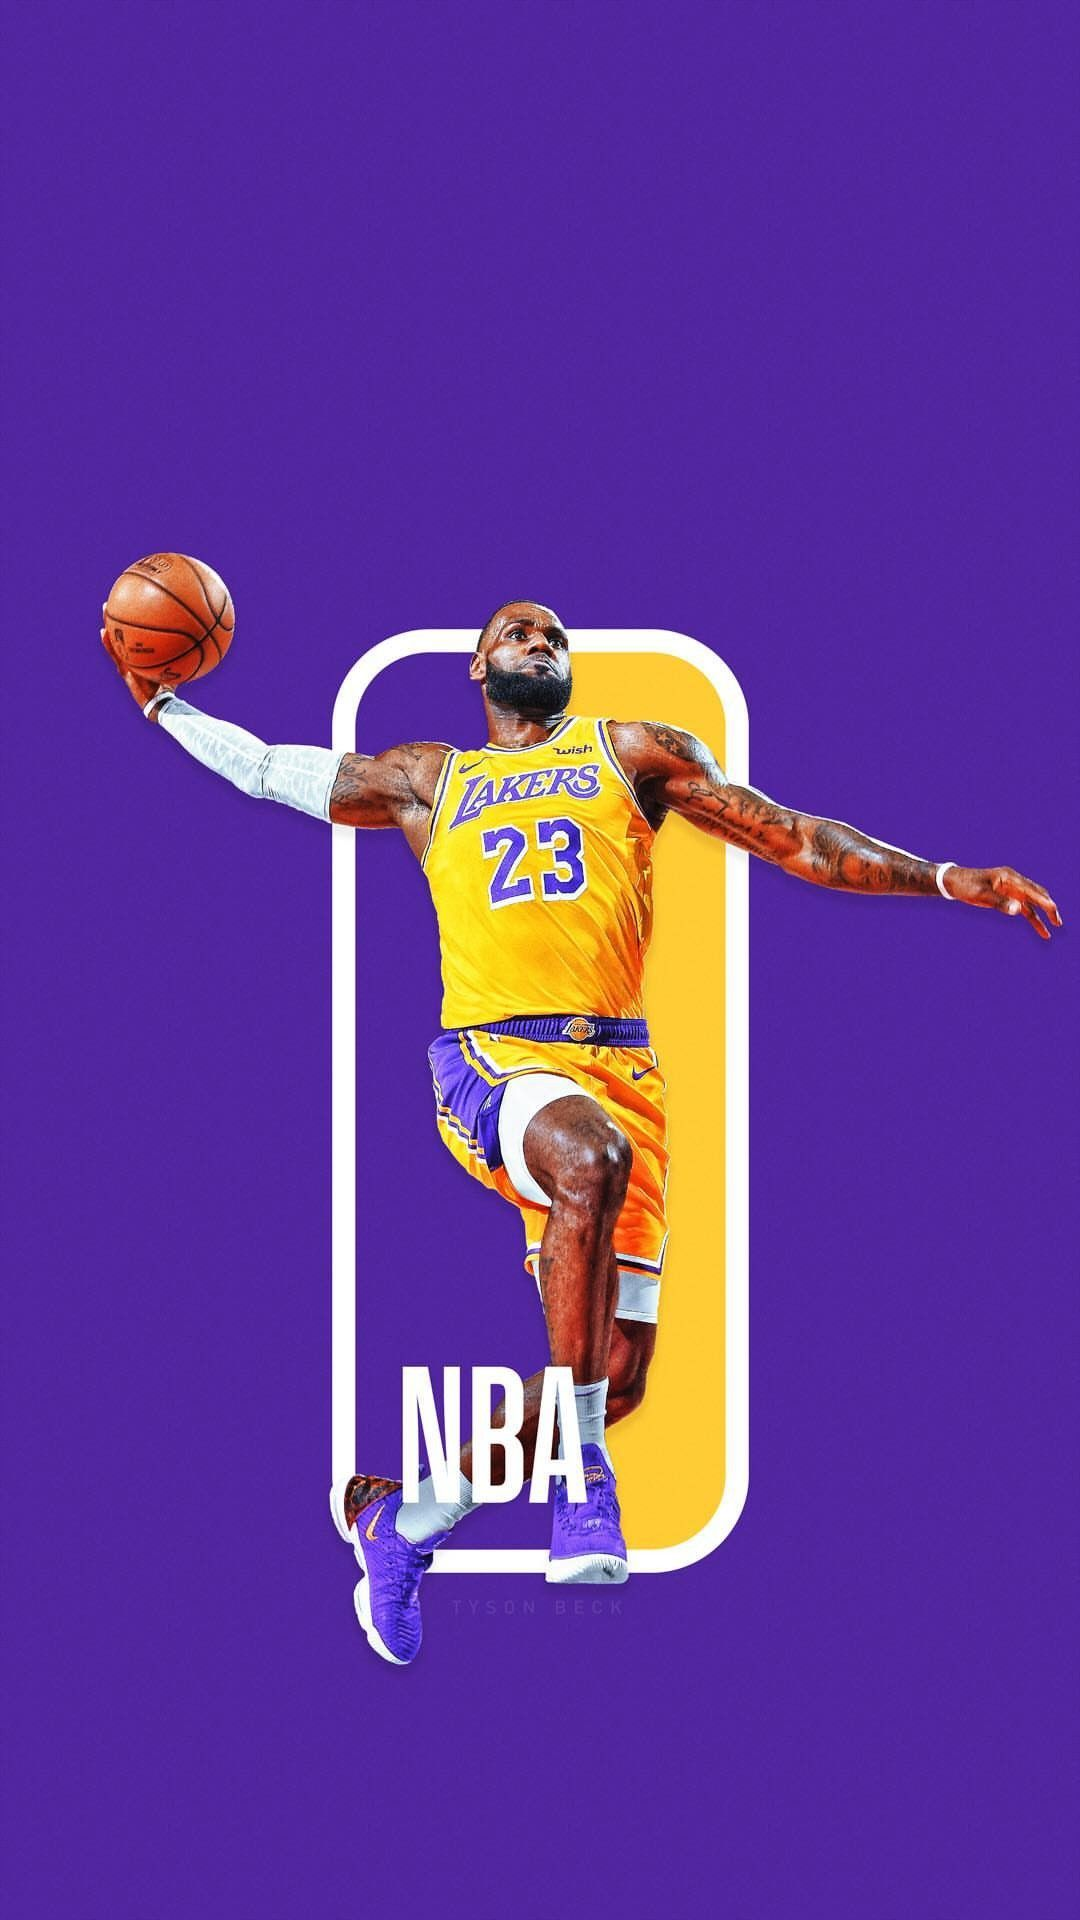 Lebron James Wallpaper Lebron James Wallpapers Nba Lebron James Lebron James Lakers